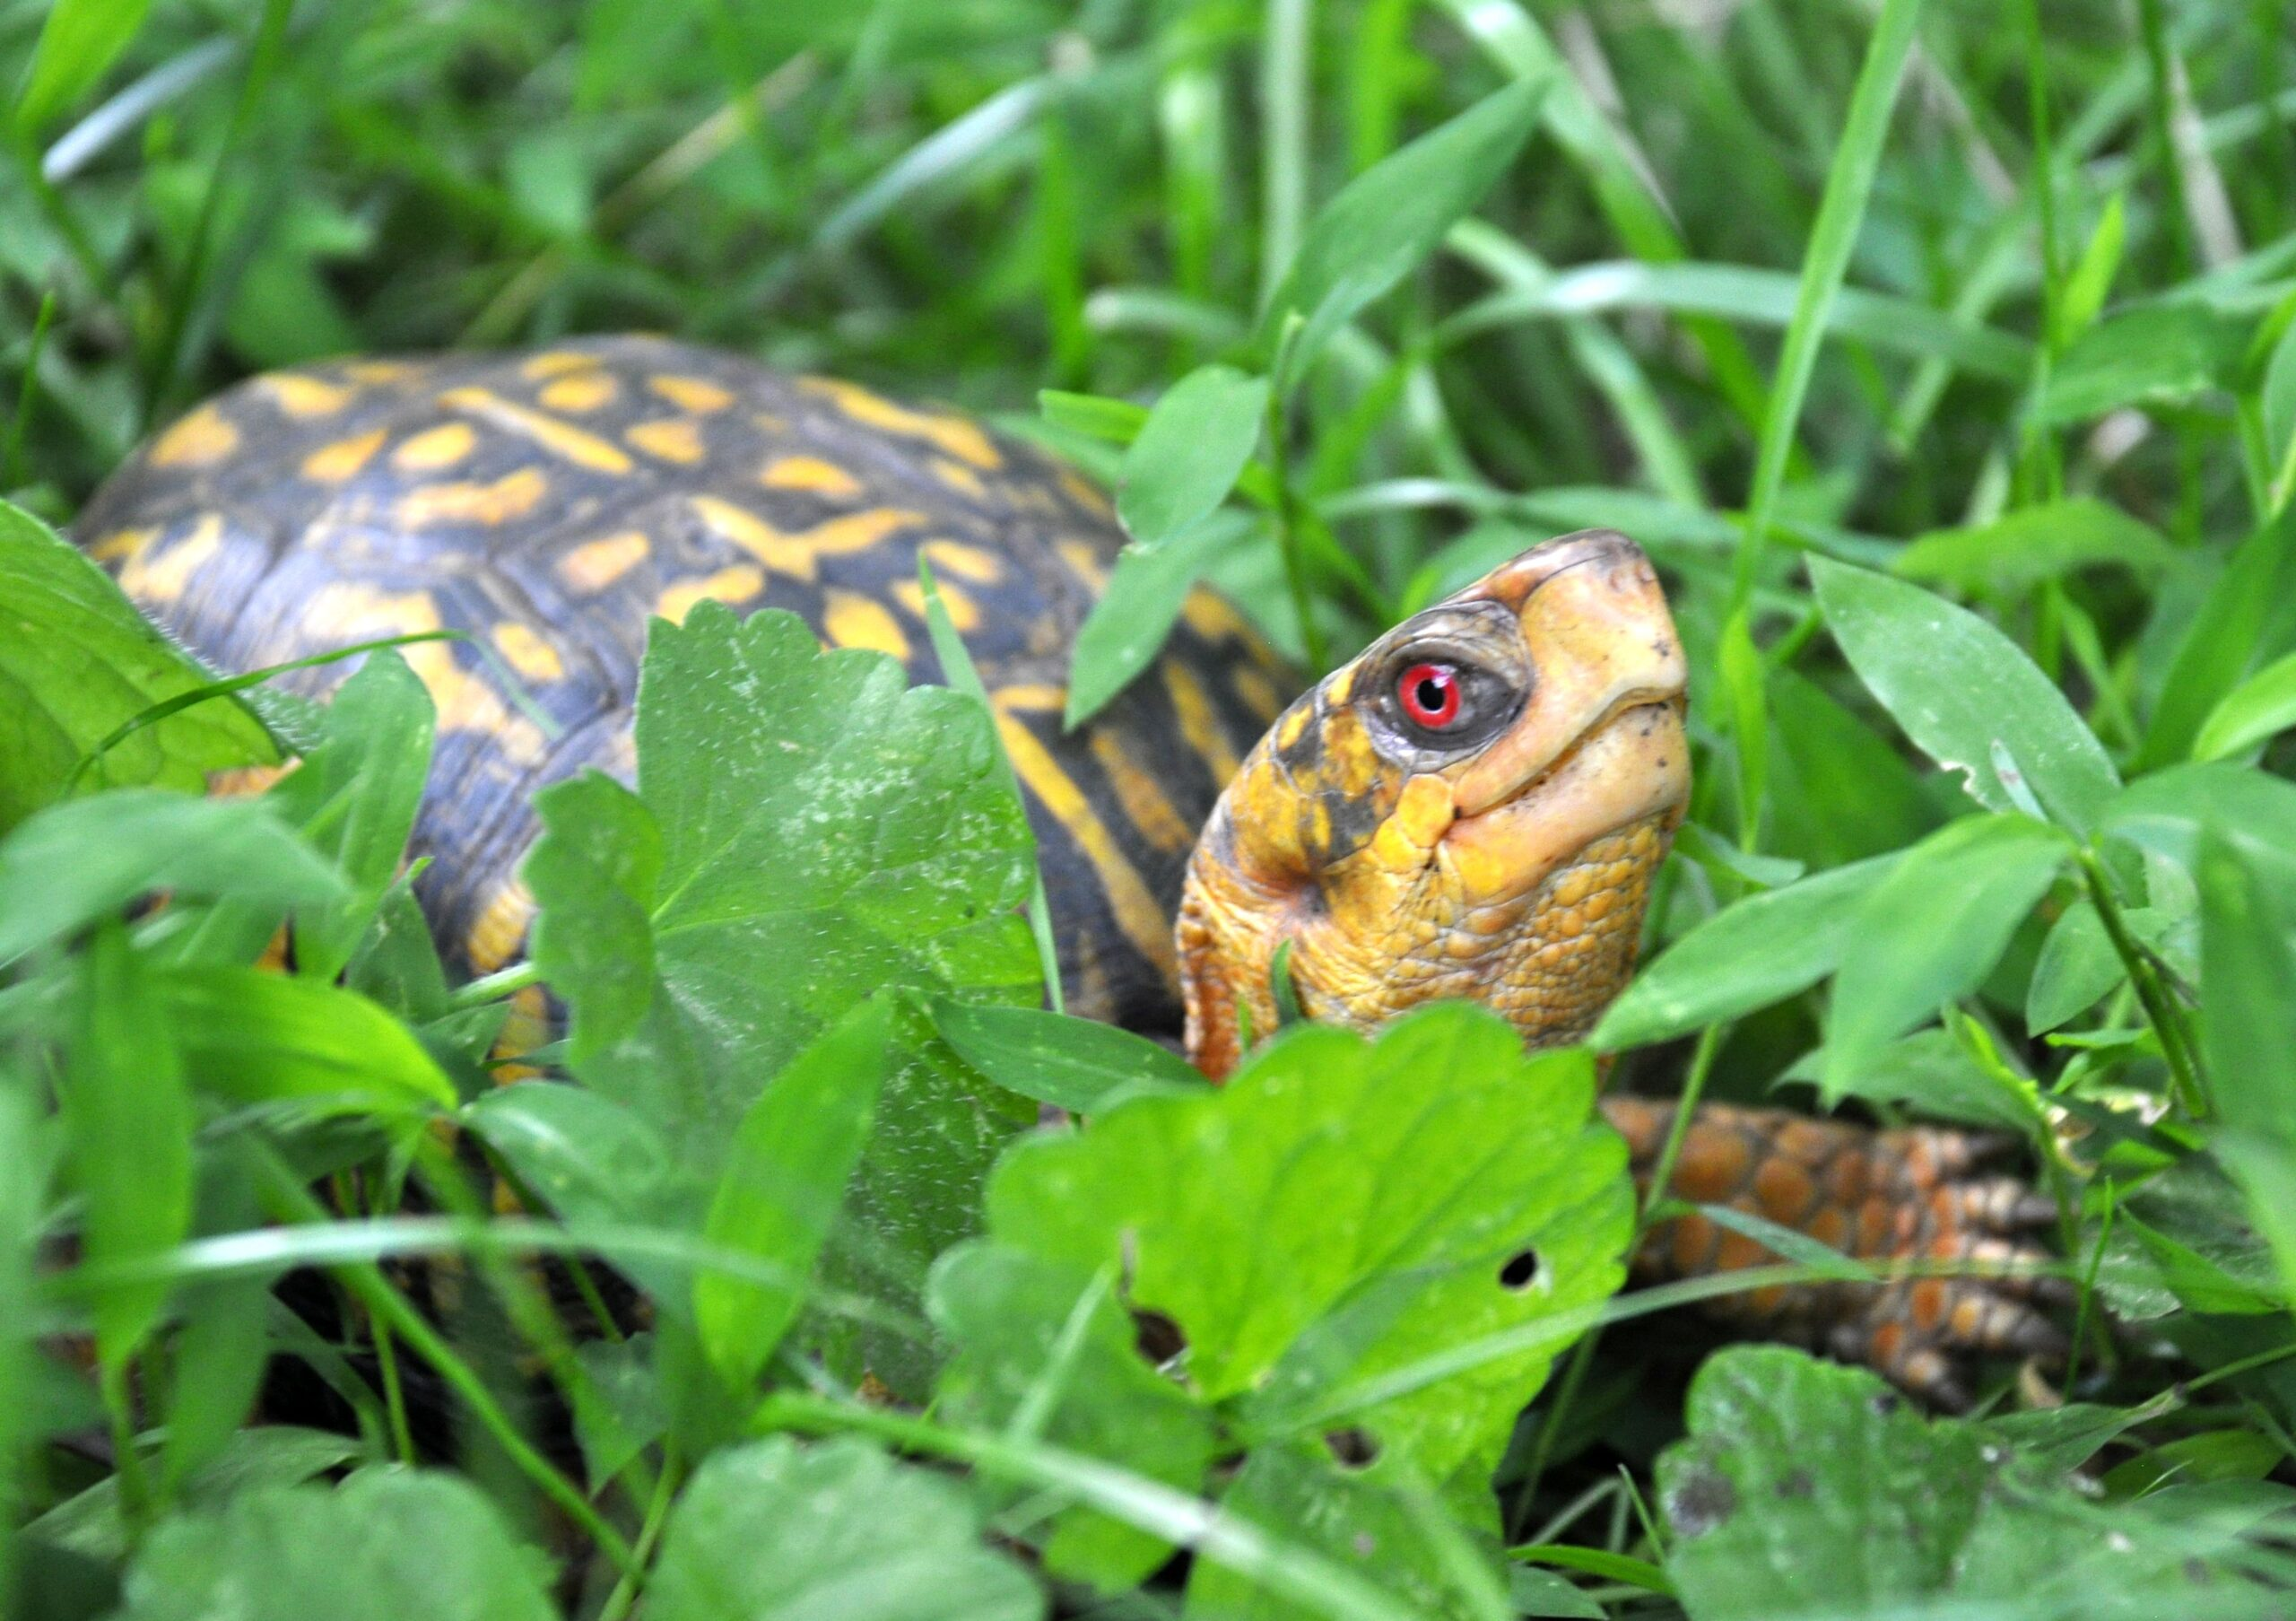 An Eastern Box Turtle at the Virginia Zoo